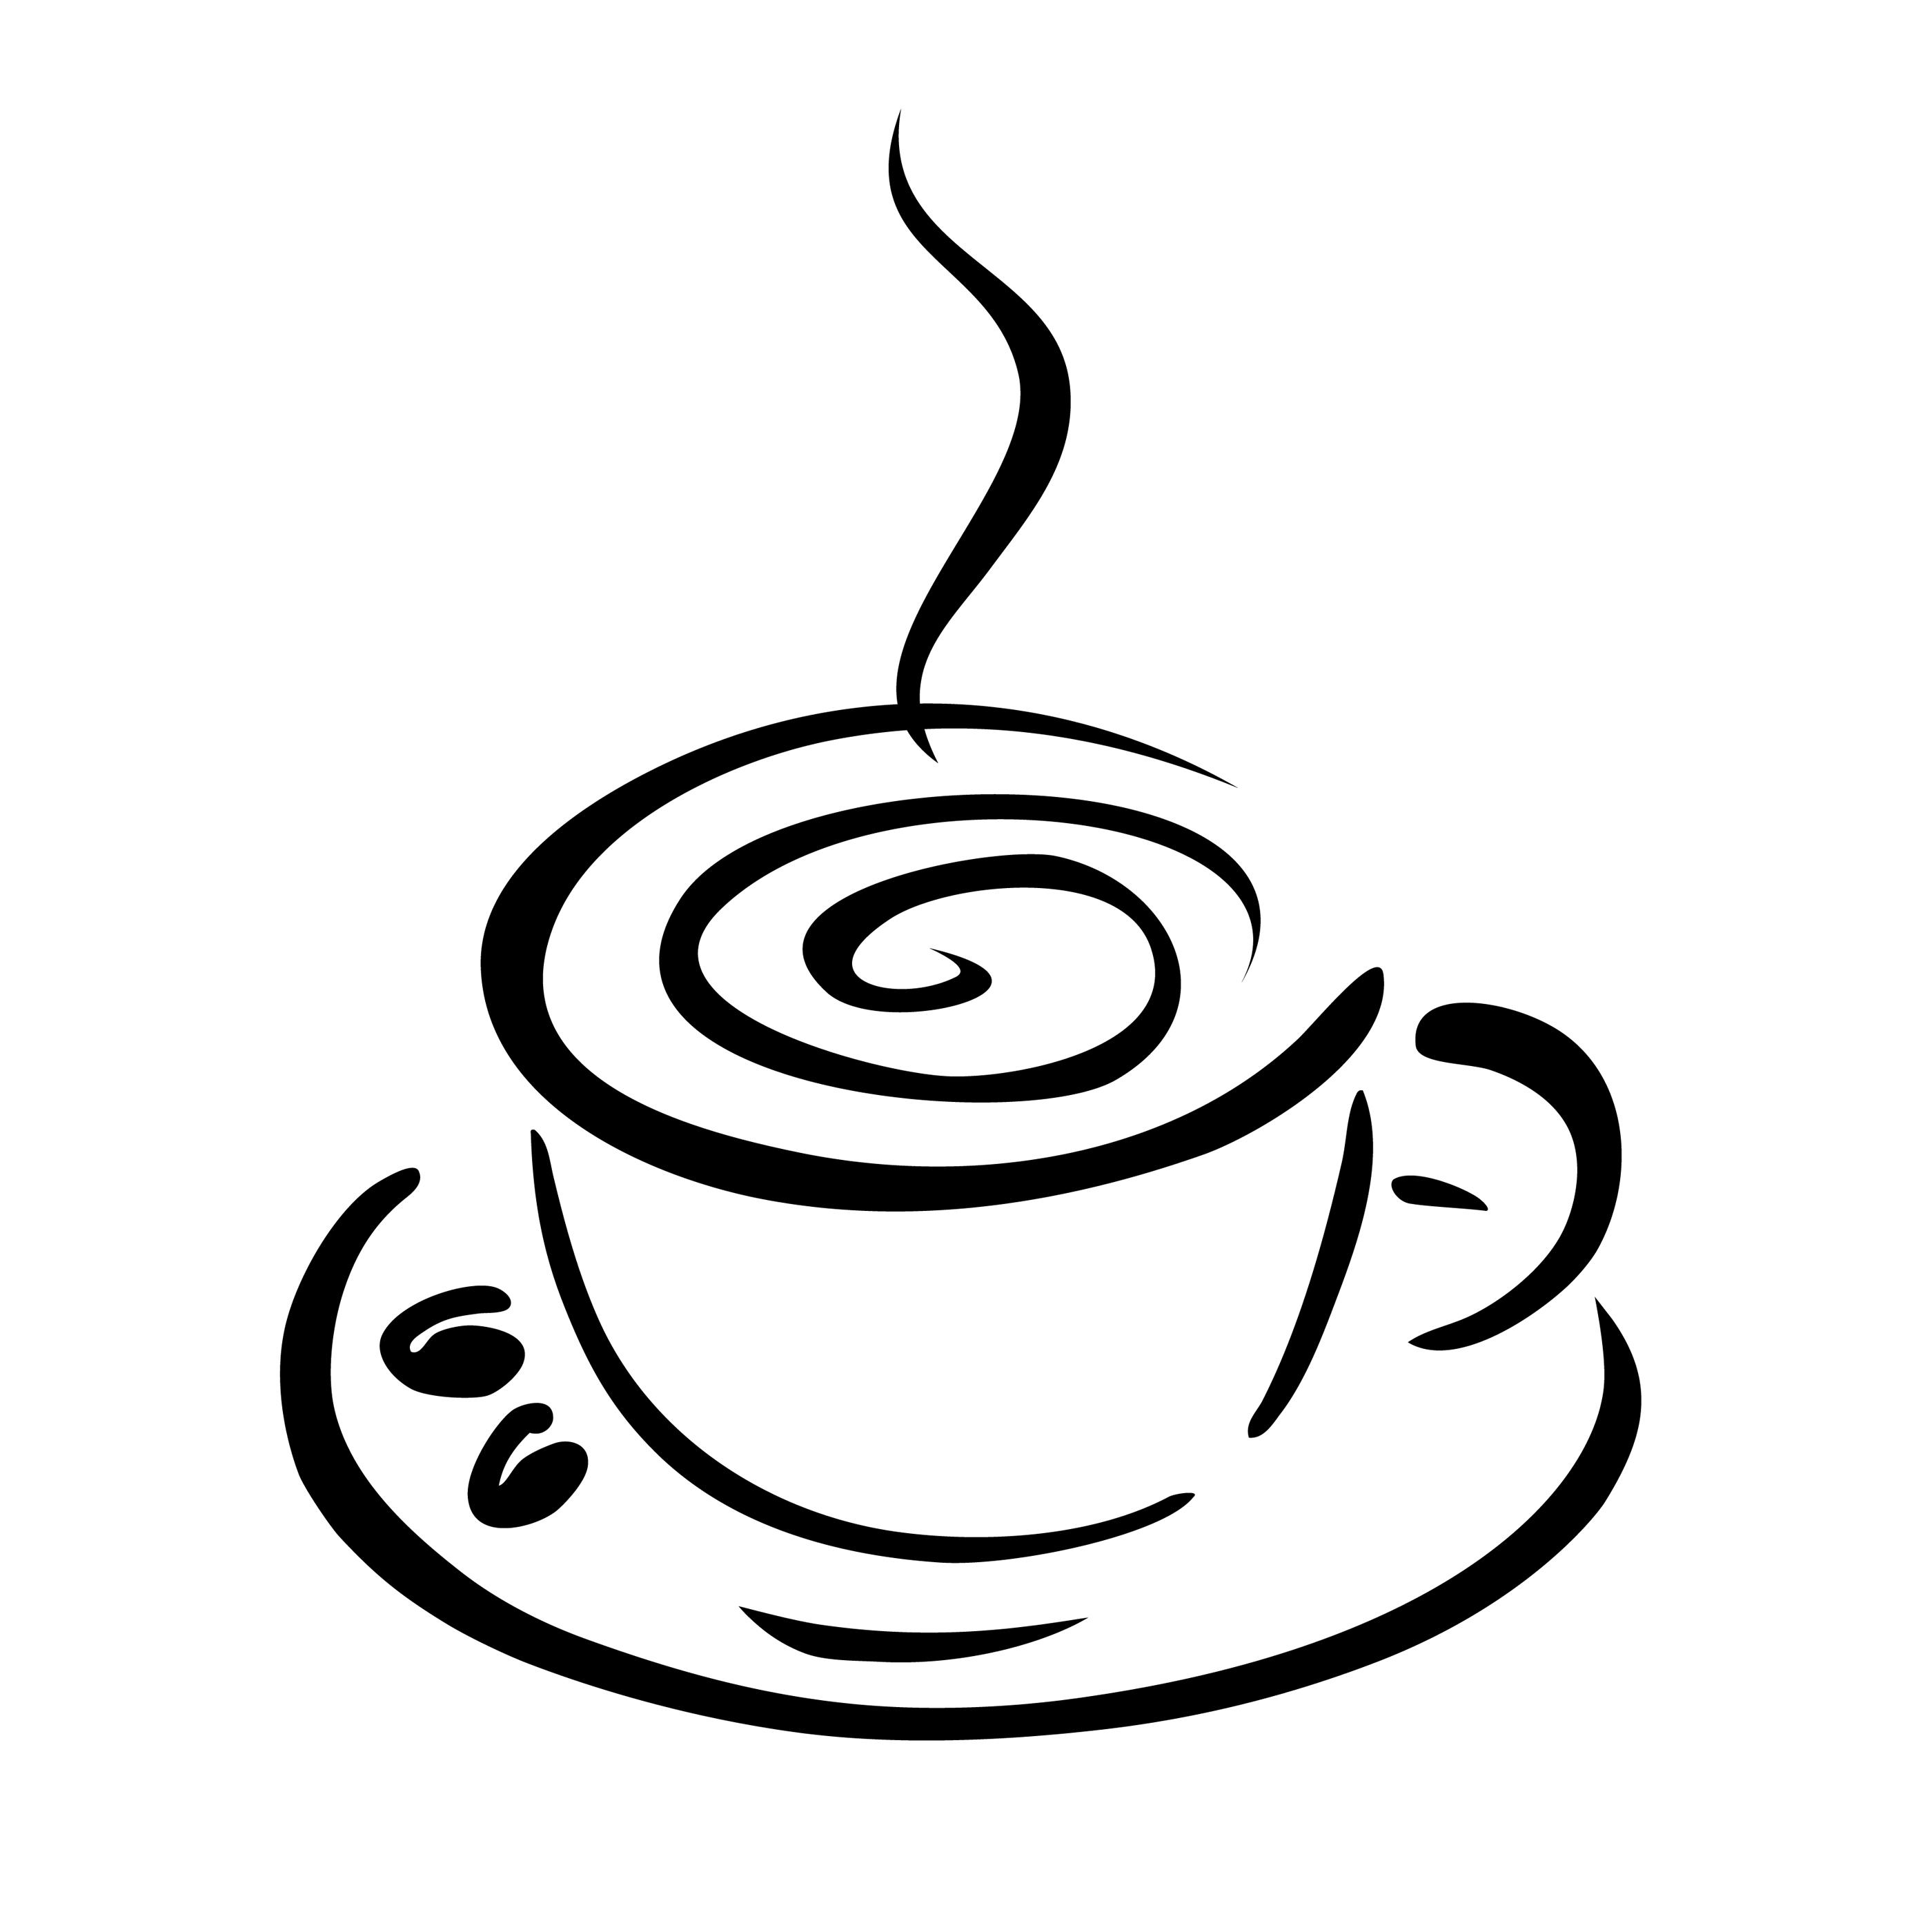 Coffee Cup Clipart - Cliparts.co